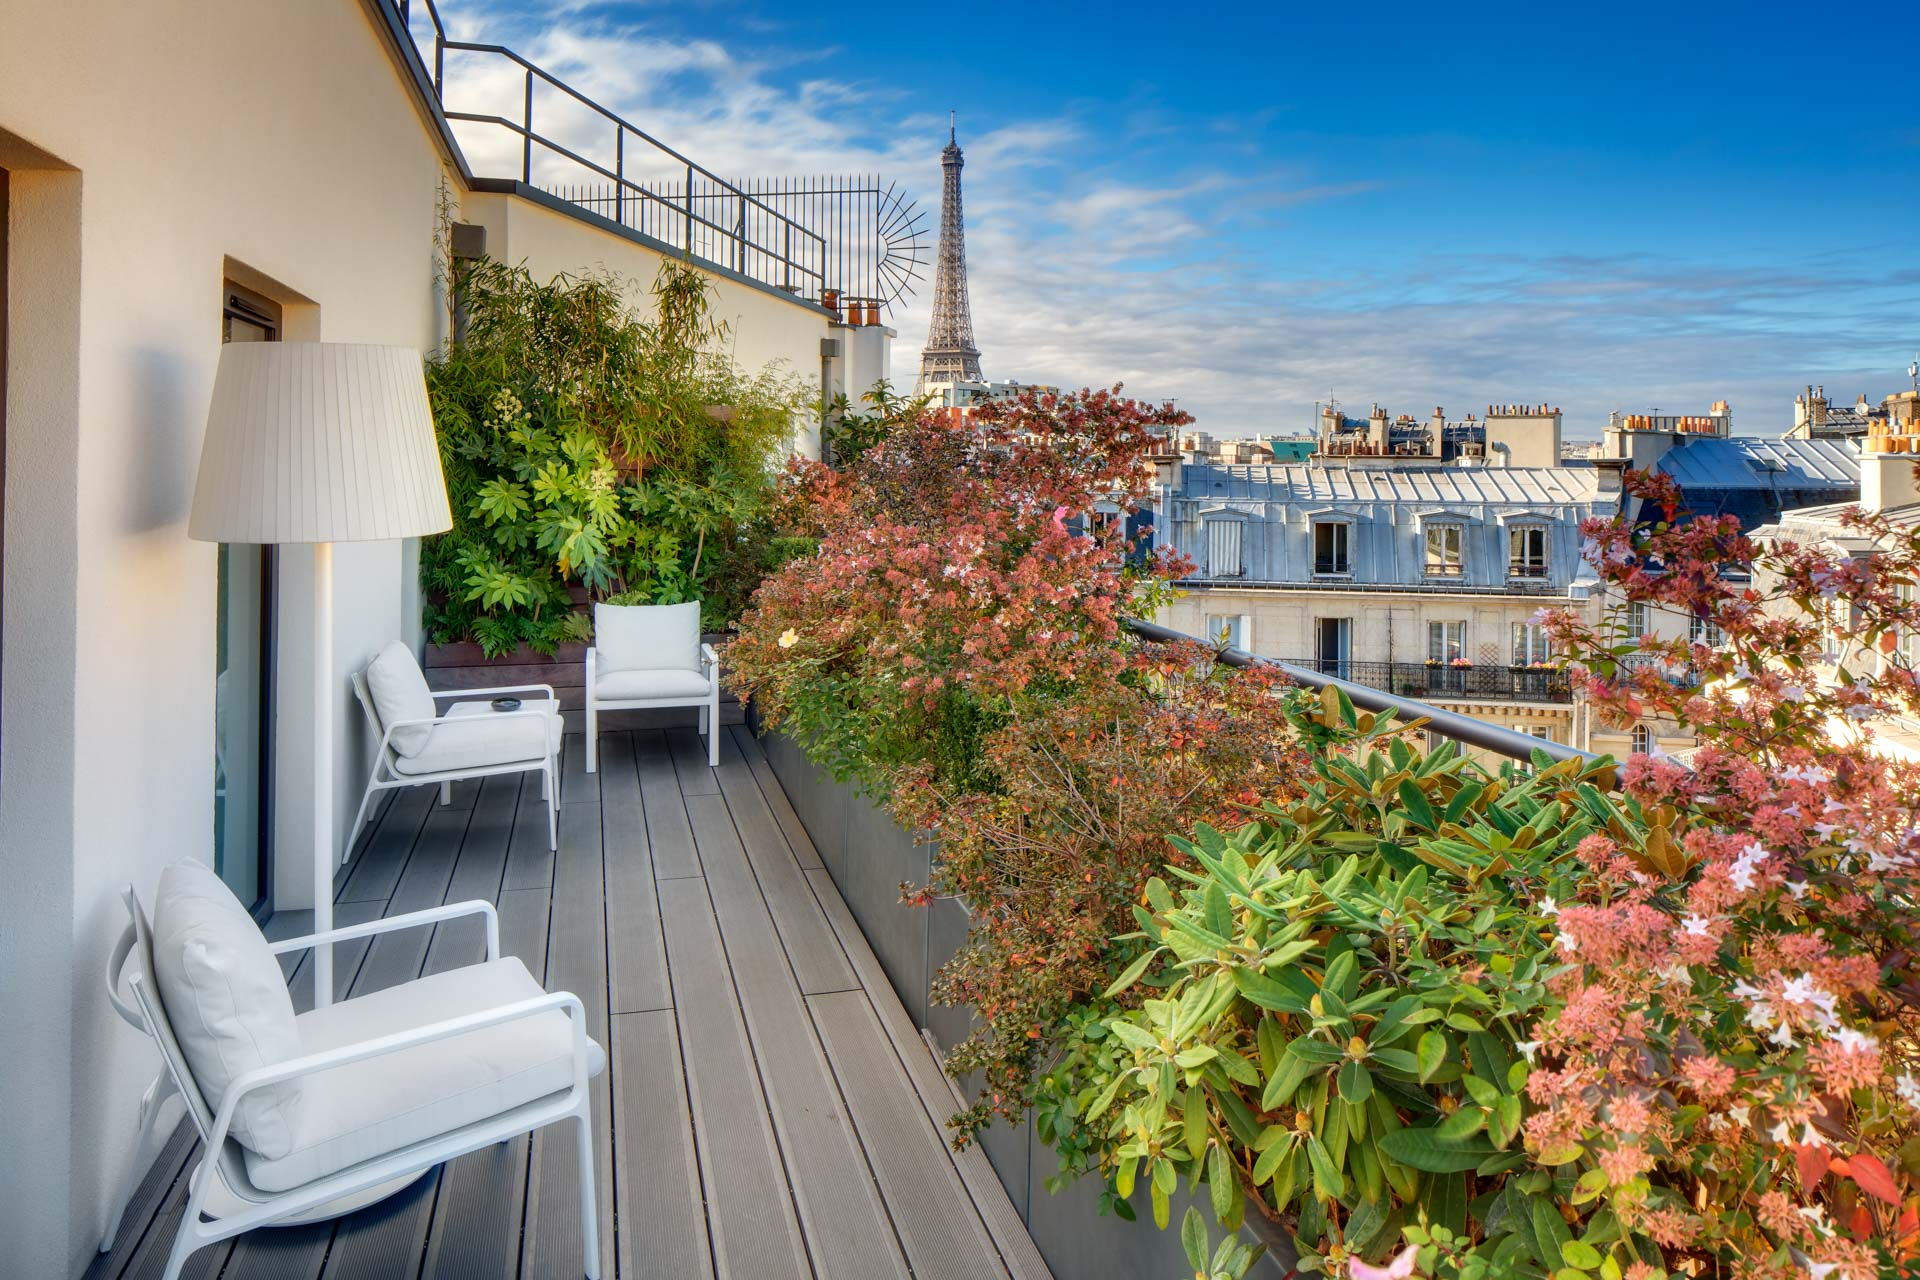 Hotel le cinq codet paris jan prerovsky photography - Hotel le cinq codet ...